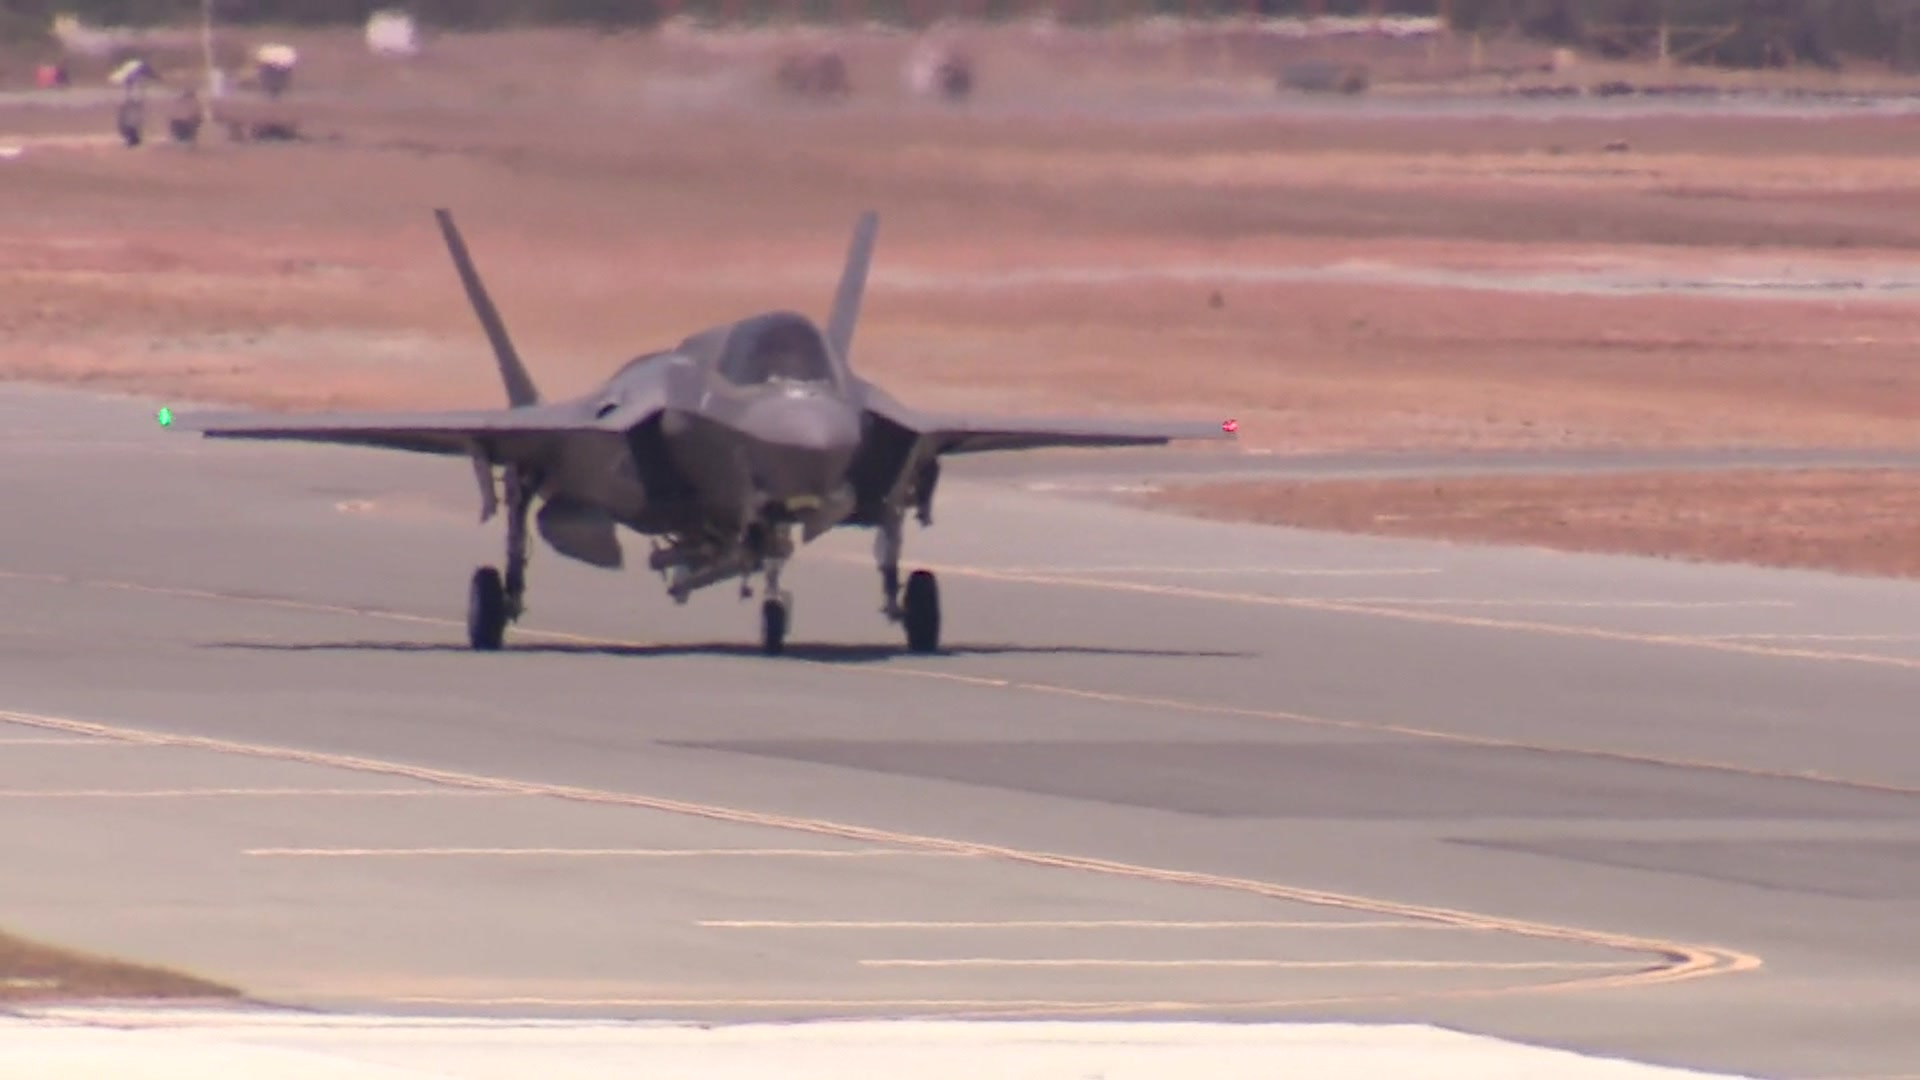 UK's F35 stealth jets fly first operational missions